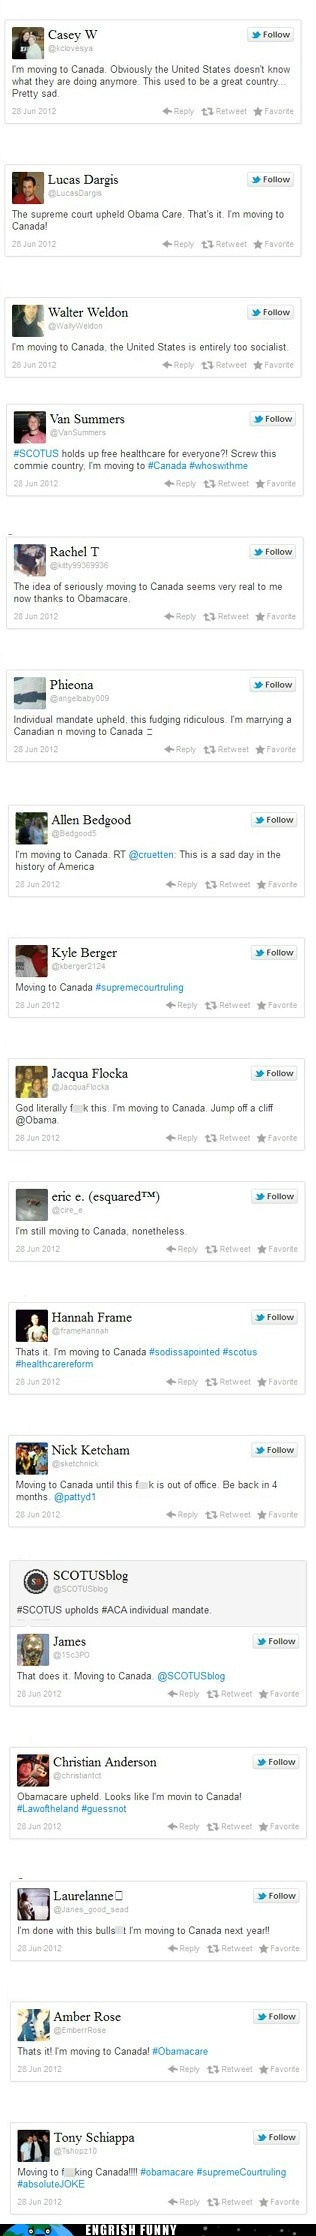 """FailBlog responded...""""Yeah, Canada has one of the most comprehensive socialized healthcare policies in the world. Threatening to move to Canada because of Obamacare is like threatening to move to Amsterdam because you hate marijuana users. So good luck with that, ultra super offended Twitter users"""""""